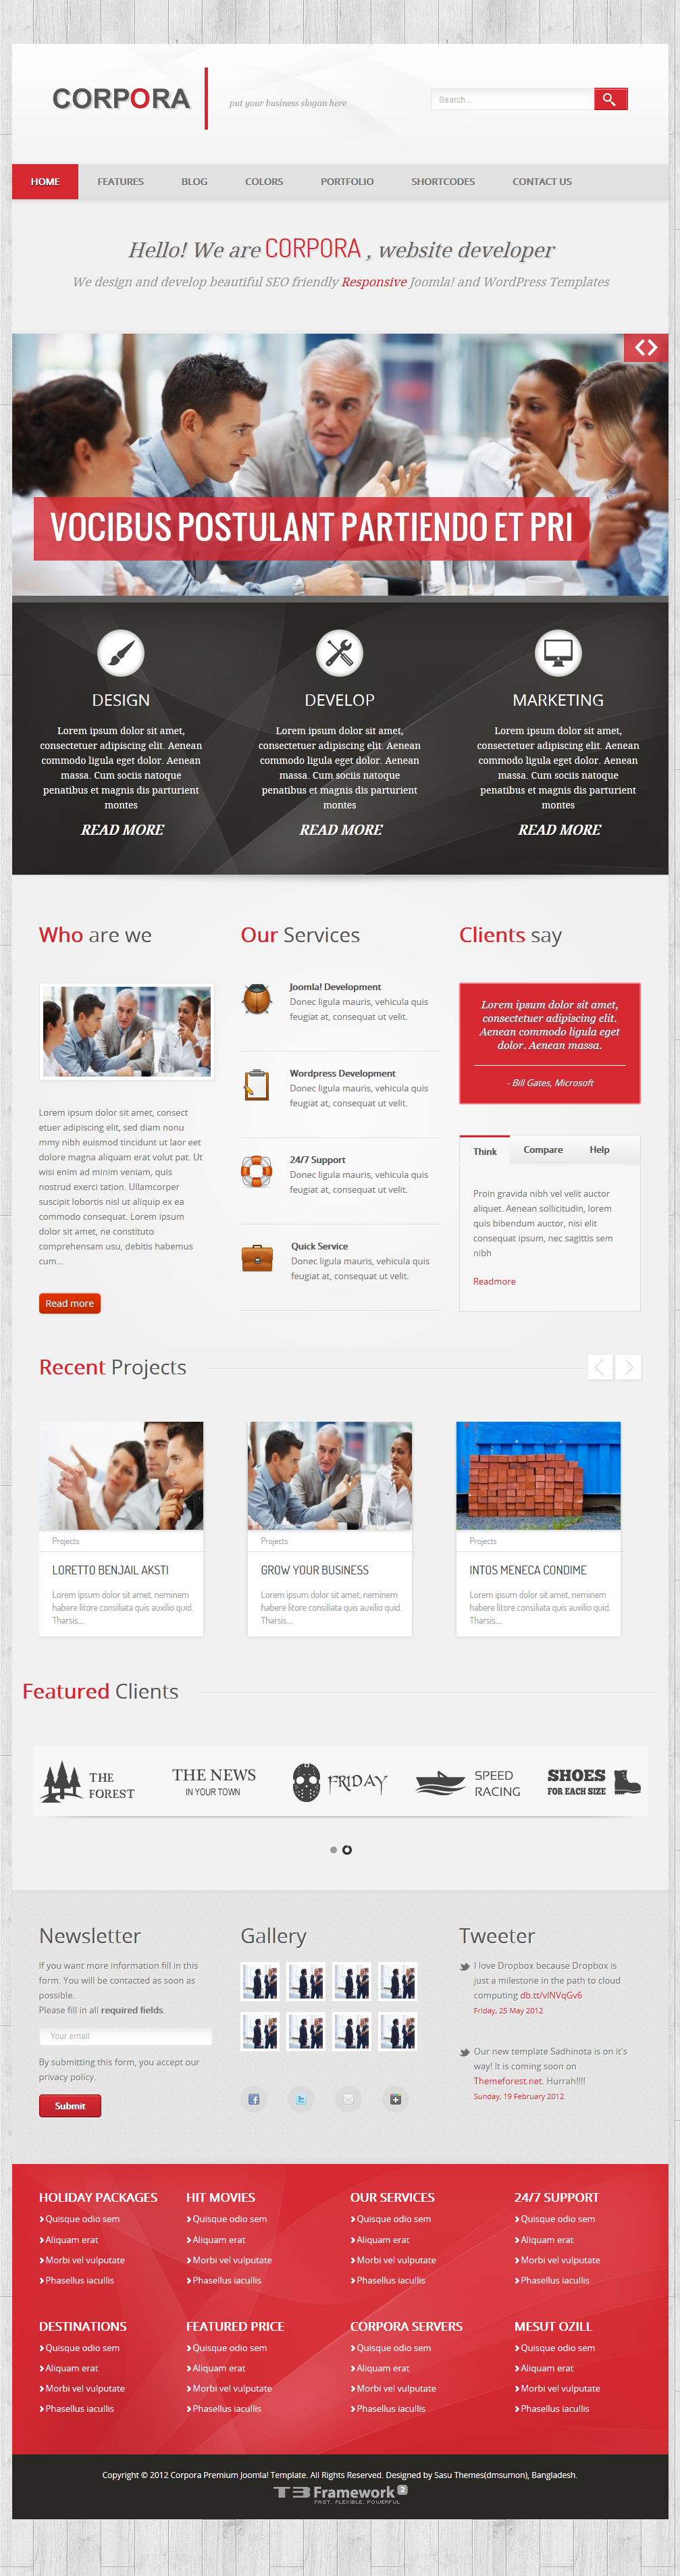 cleaning responsive joomla template 45335 corpora clean responsive joomla template by dmsumon